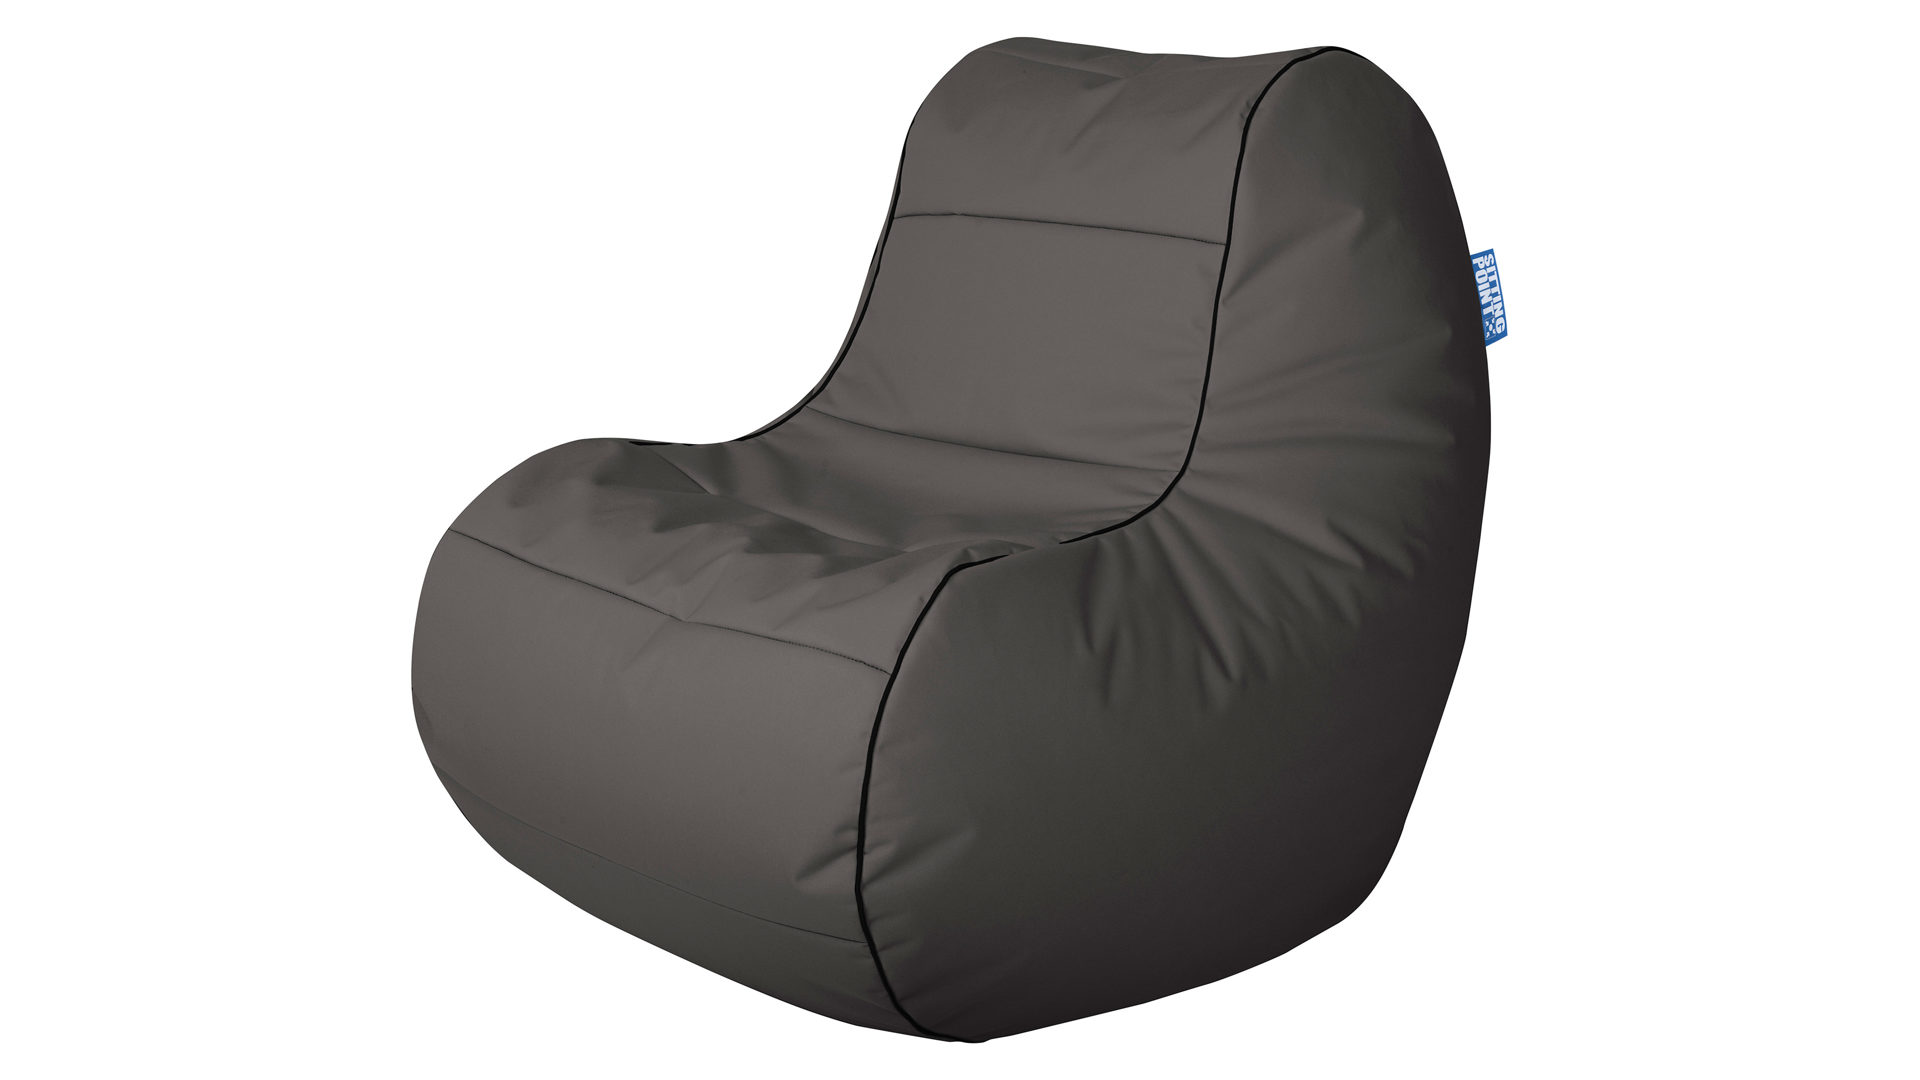 Sitzsack Sessel Magma Sitting Point Aus Stoff In Grau SITTING POINT  Sitzsack Sessel Scuba